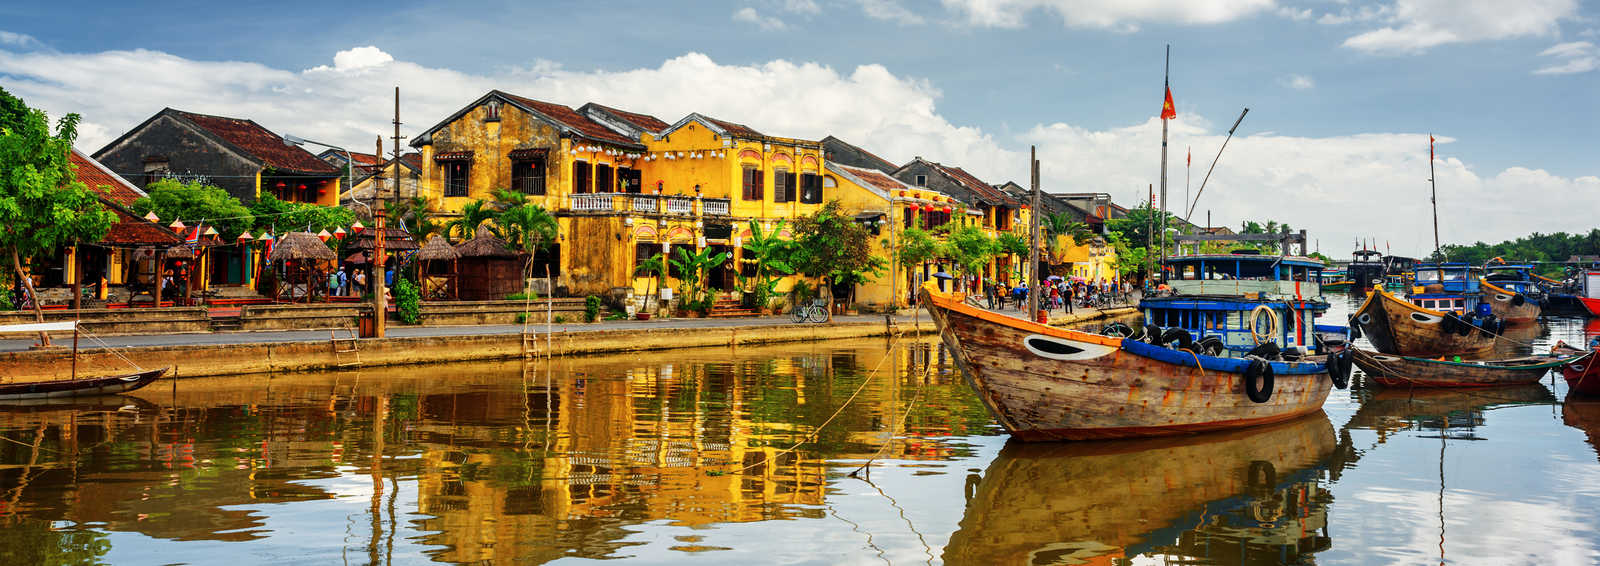 Wooden boats on the Thu Bon River in Hoi An Ancient Town (Hoian), Vietnam.